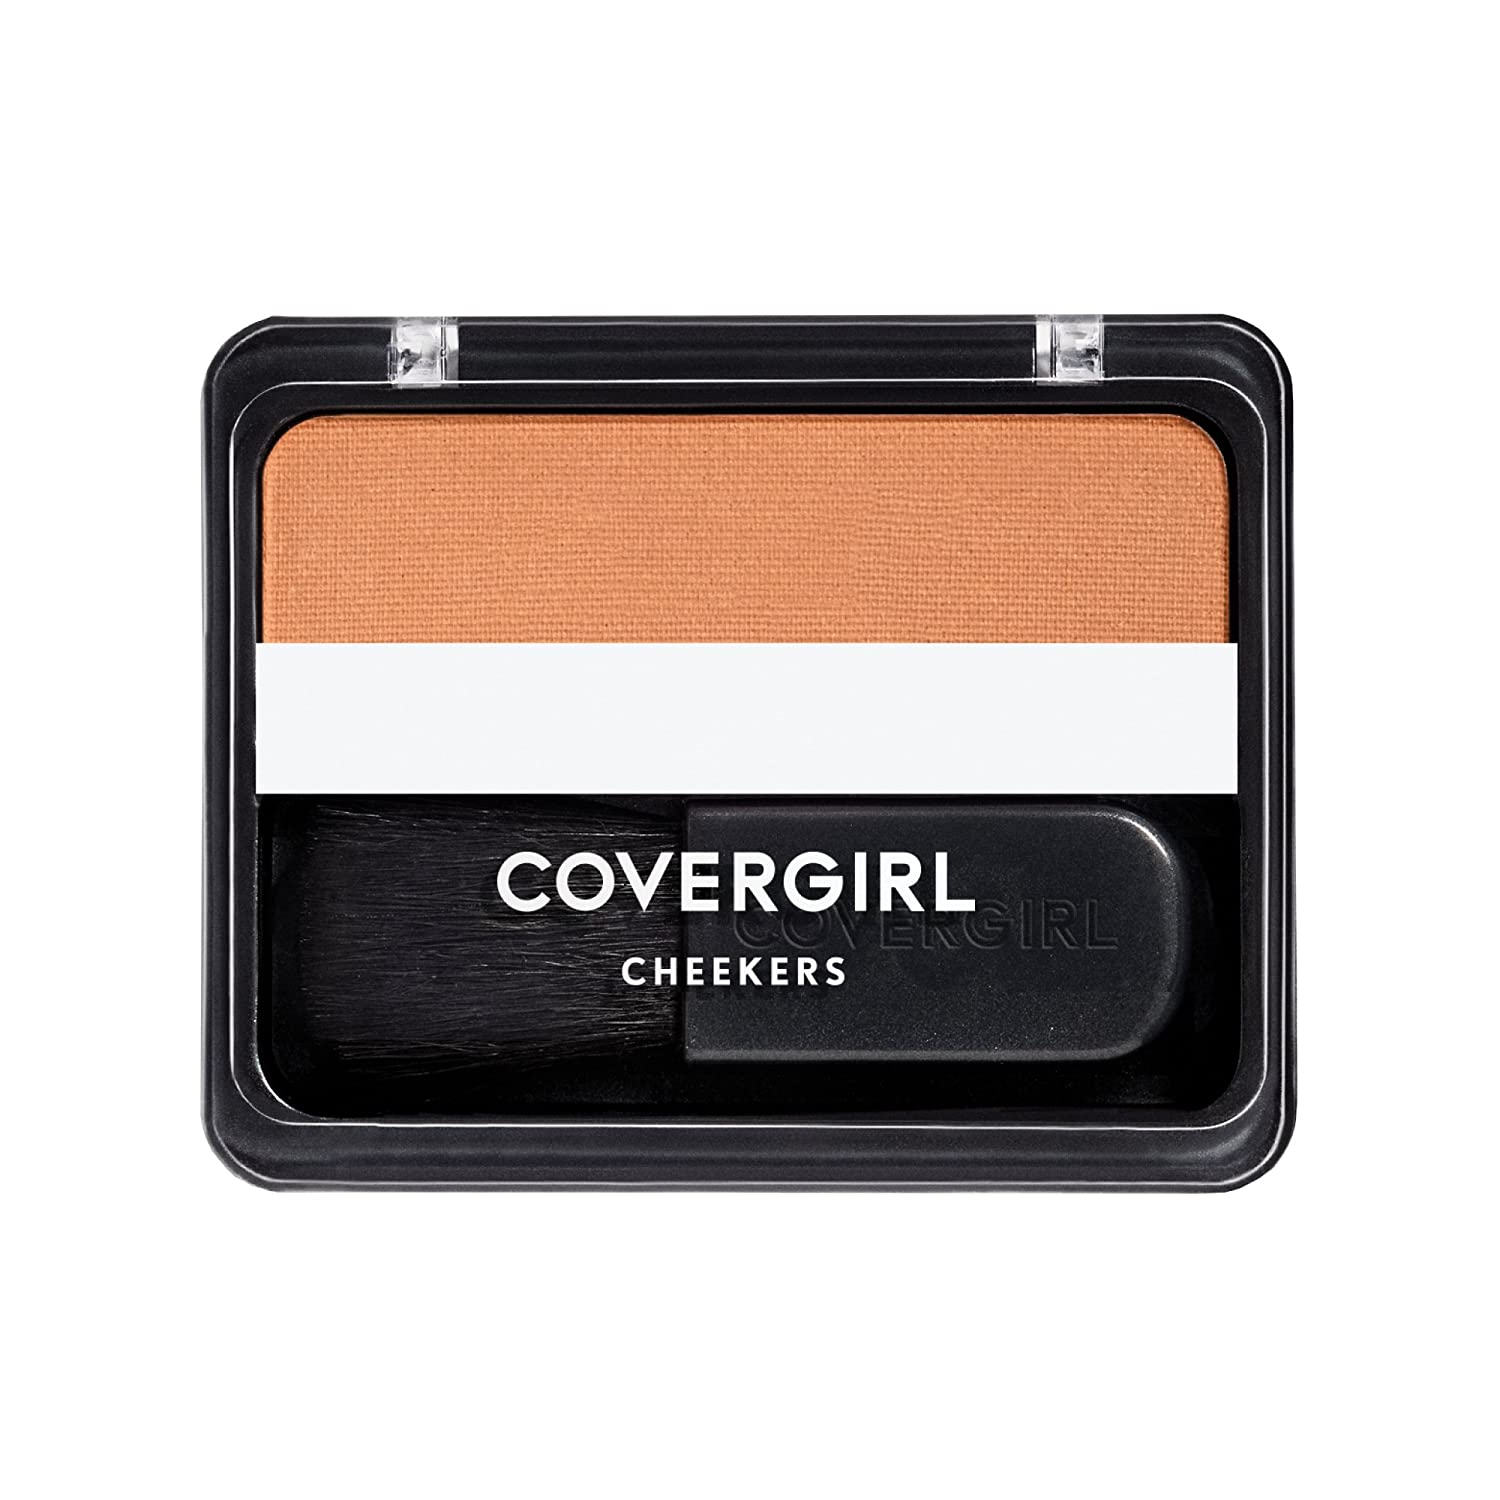 COVERGIRL - Cheekers Blush - Packaging May Vary Coty ba-boo-byi-com3268